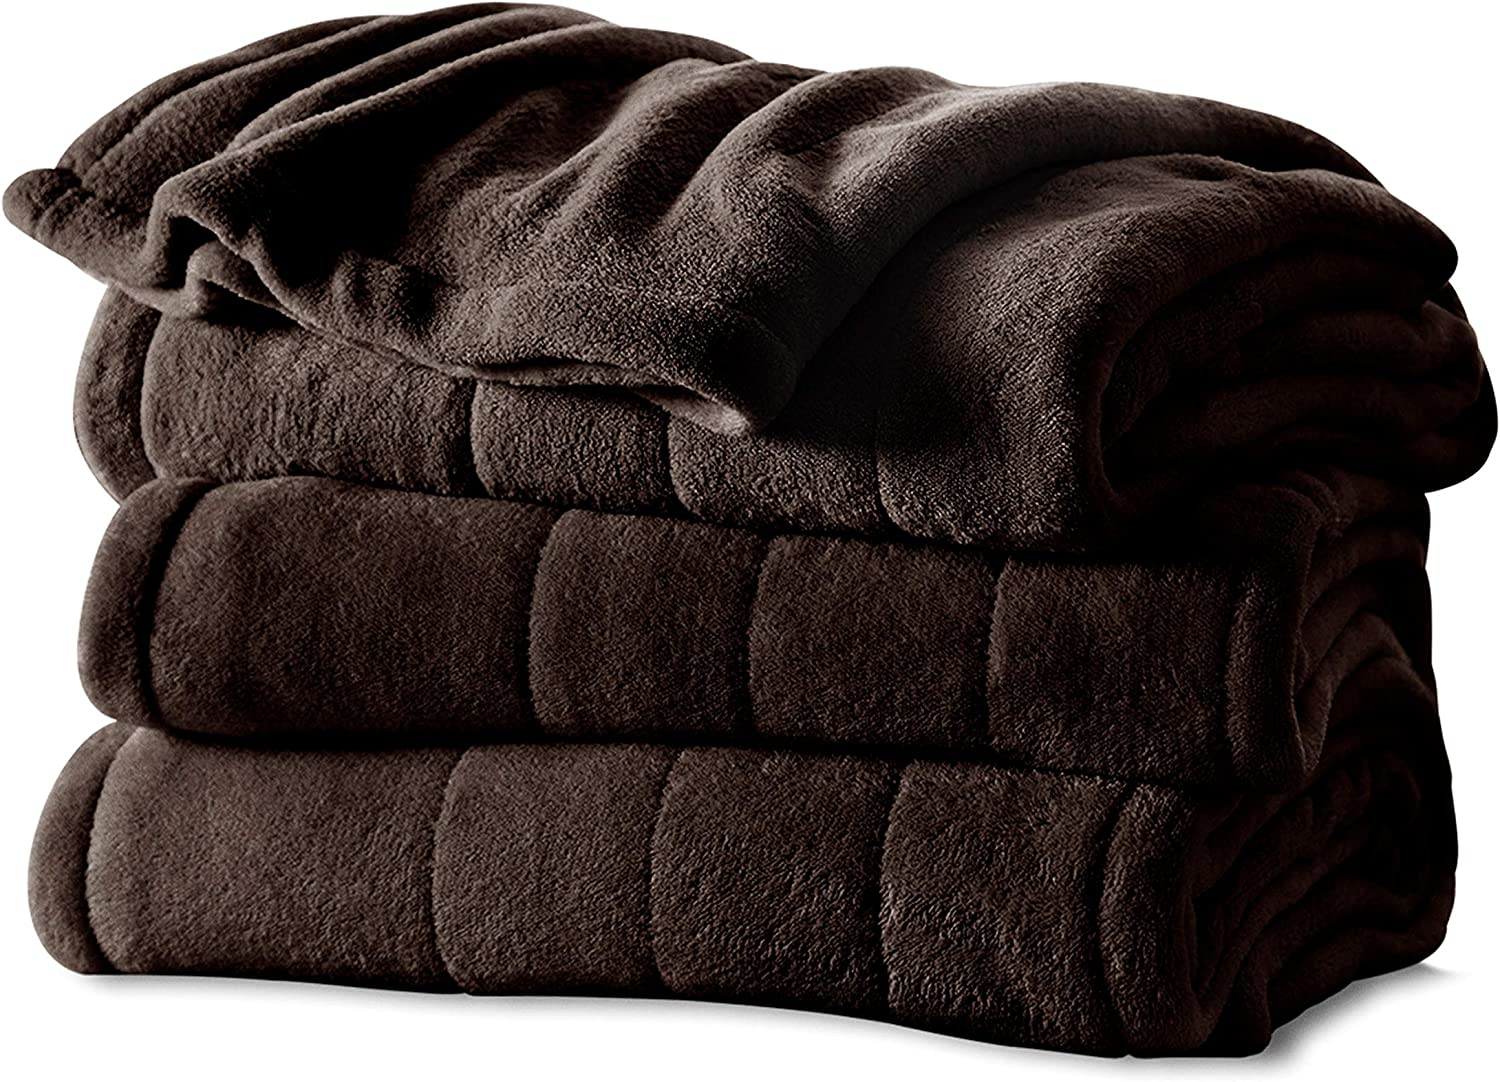 #1 Selling Sunbeam Heated Fleece Electric Blanket in a Twin Size Dont Overpay for a Throw Royal Blue Get a Bigger Warming Fleece Blanket with Better Technology!!! A Long 10 Hour Shut Off with a 6 Foot Cord Makes It an Ideal Buy in Bedding